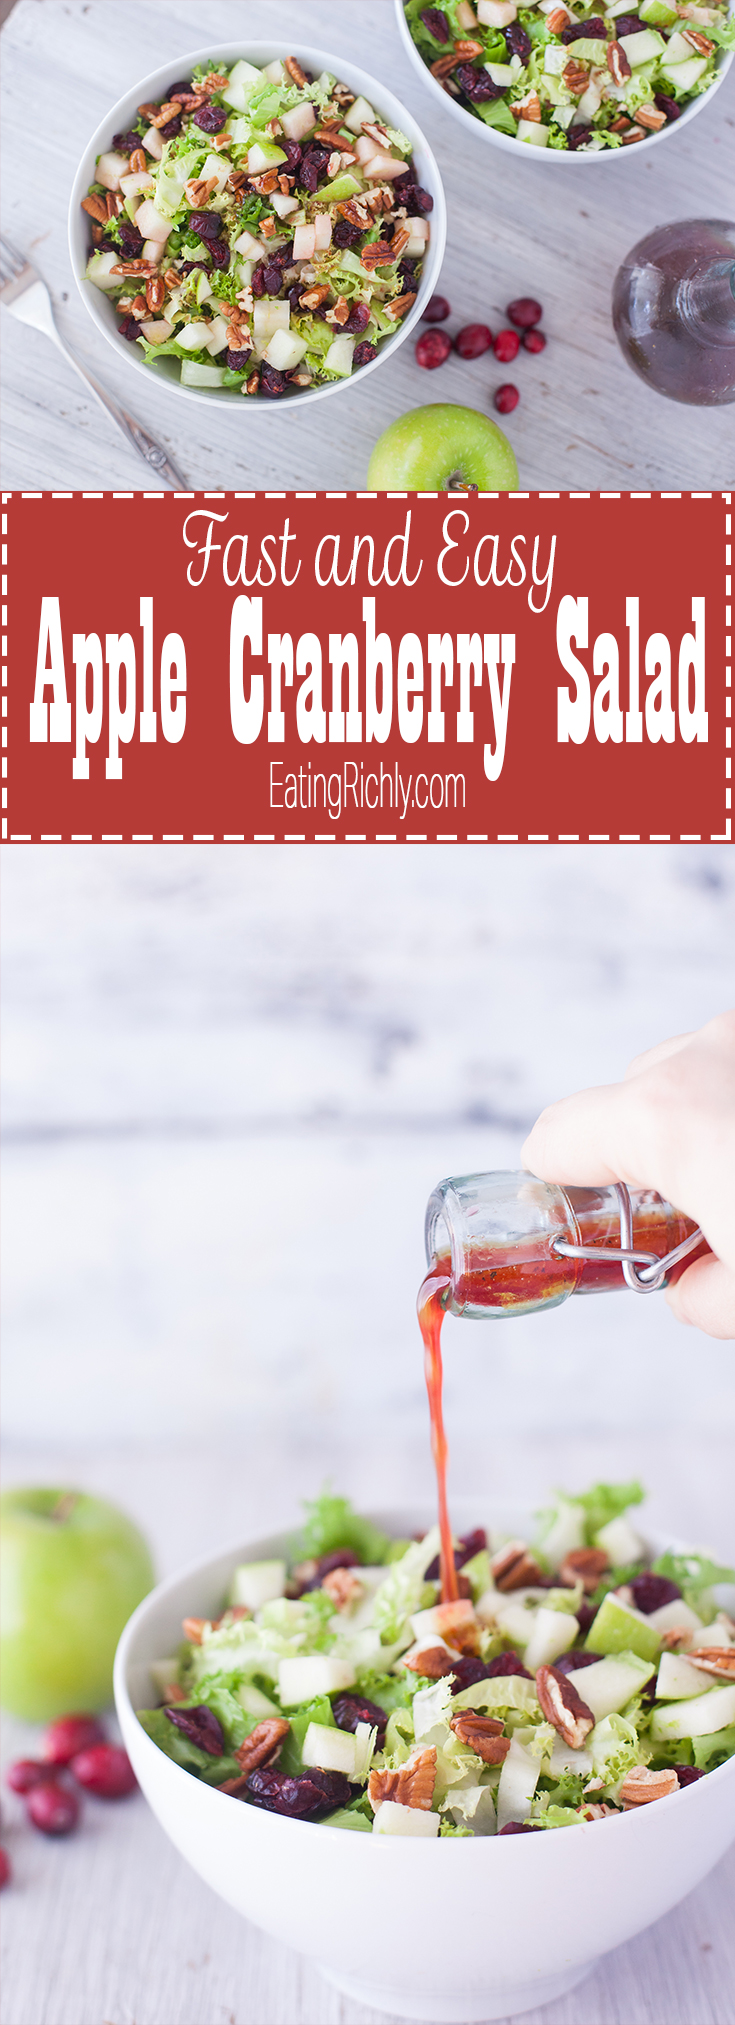 This fast and easy apple cranberry salad recipe makes two filling meals, or four side salads. It's #dairyfree #vegan and #glutenfree. Plus we walk you through everything you need to know about endive, frisée, escarole, and other chicory vegetables. From EatingRichly.com